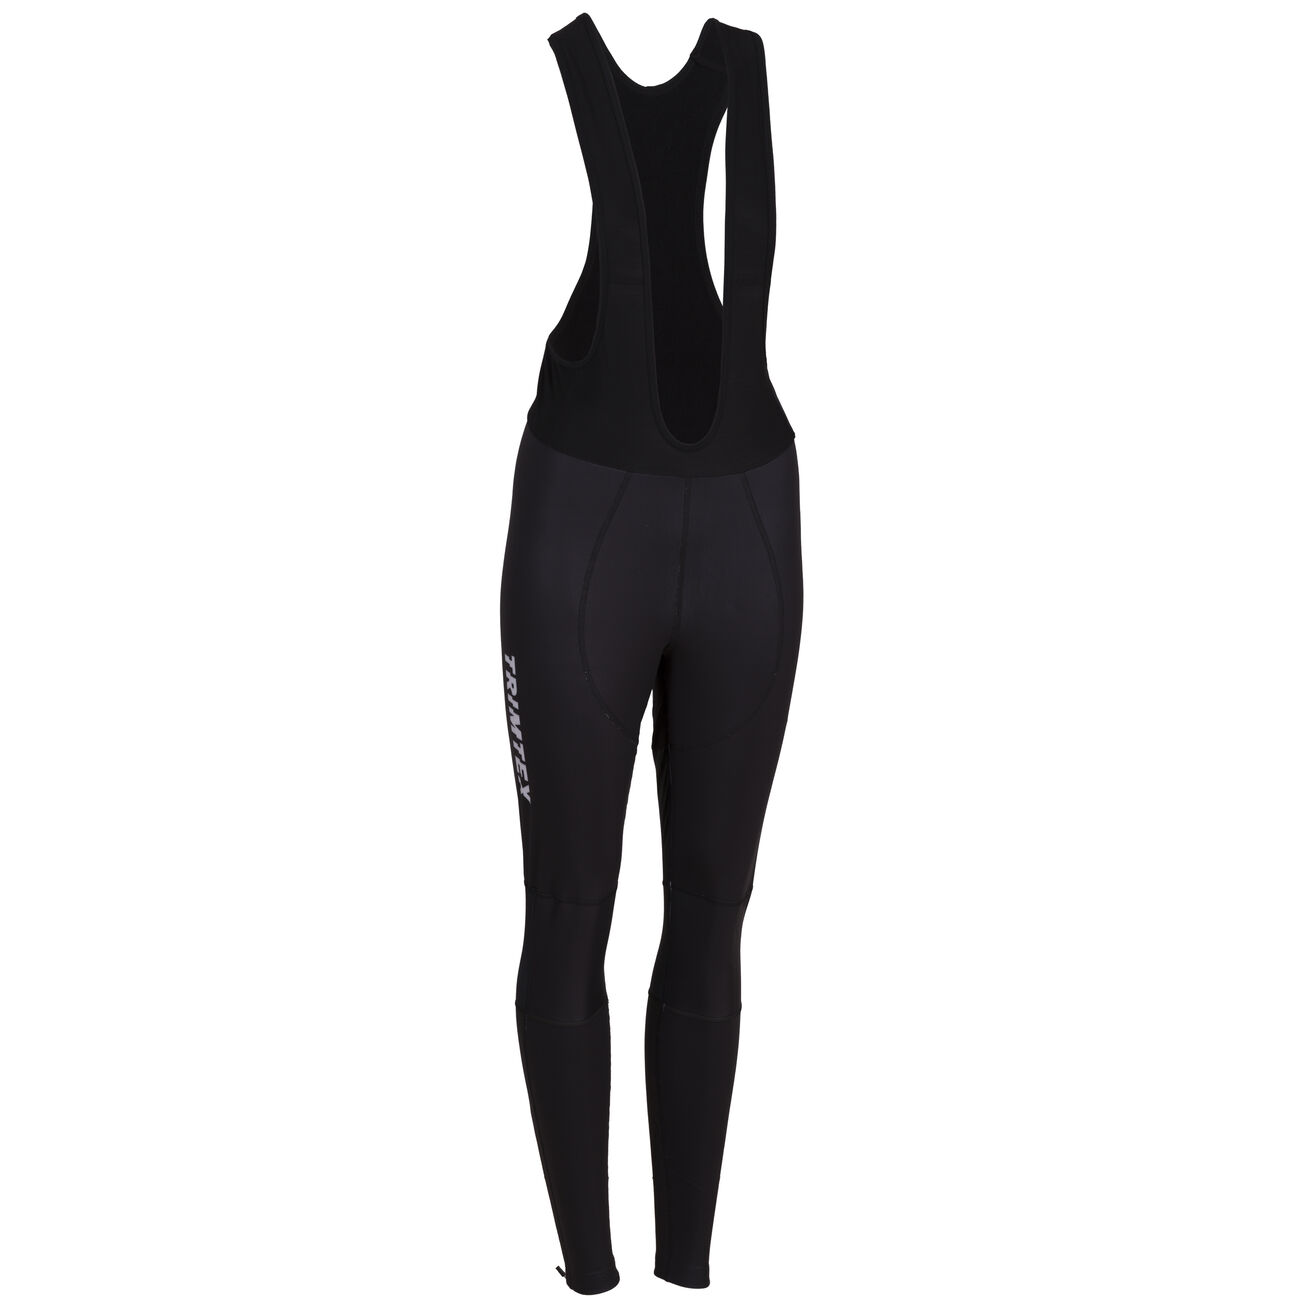 Venom Thermo cycling pants women's